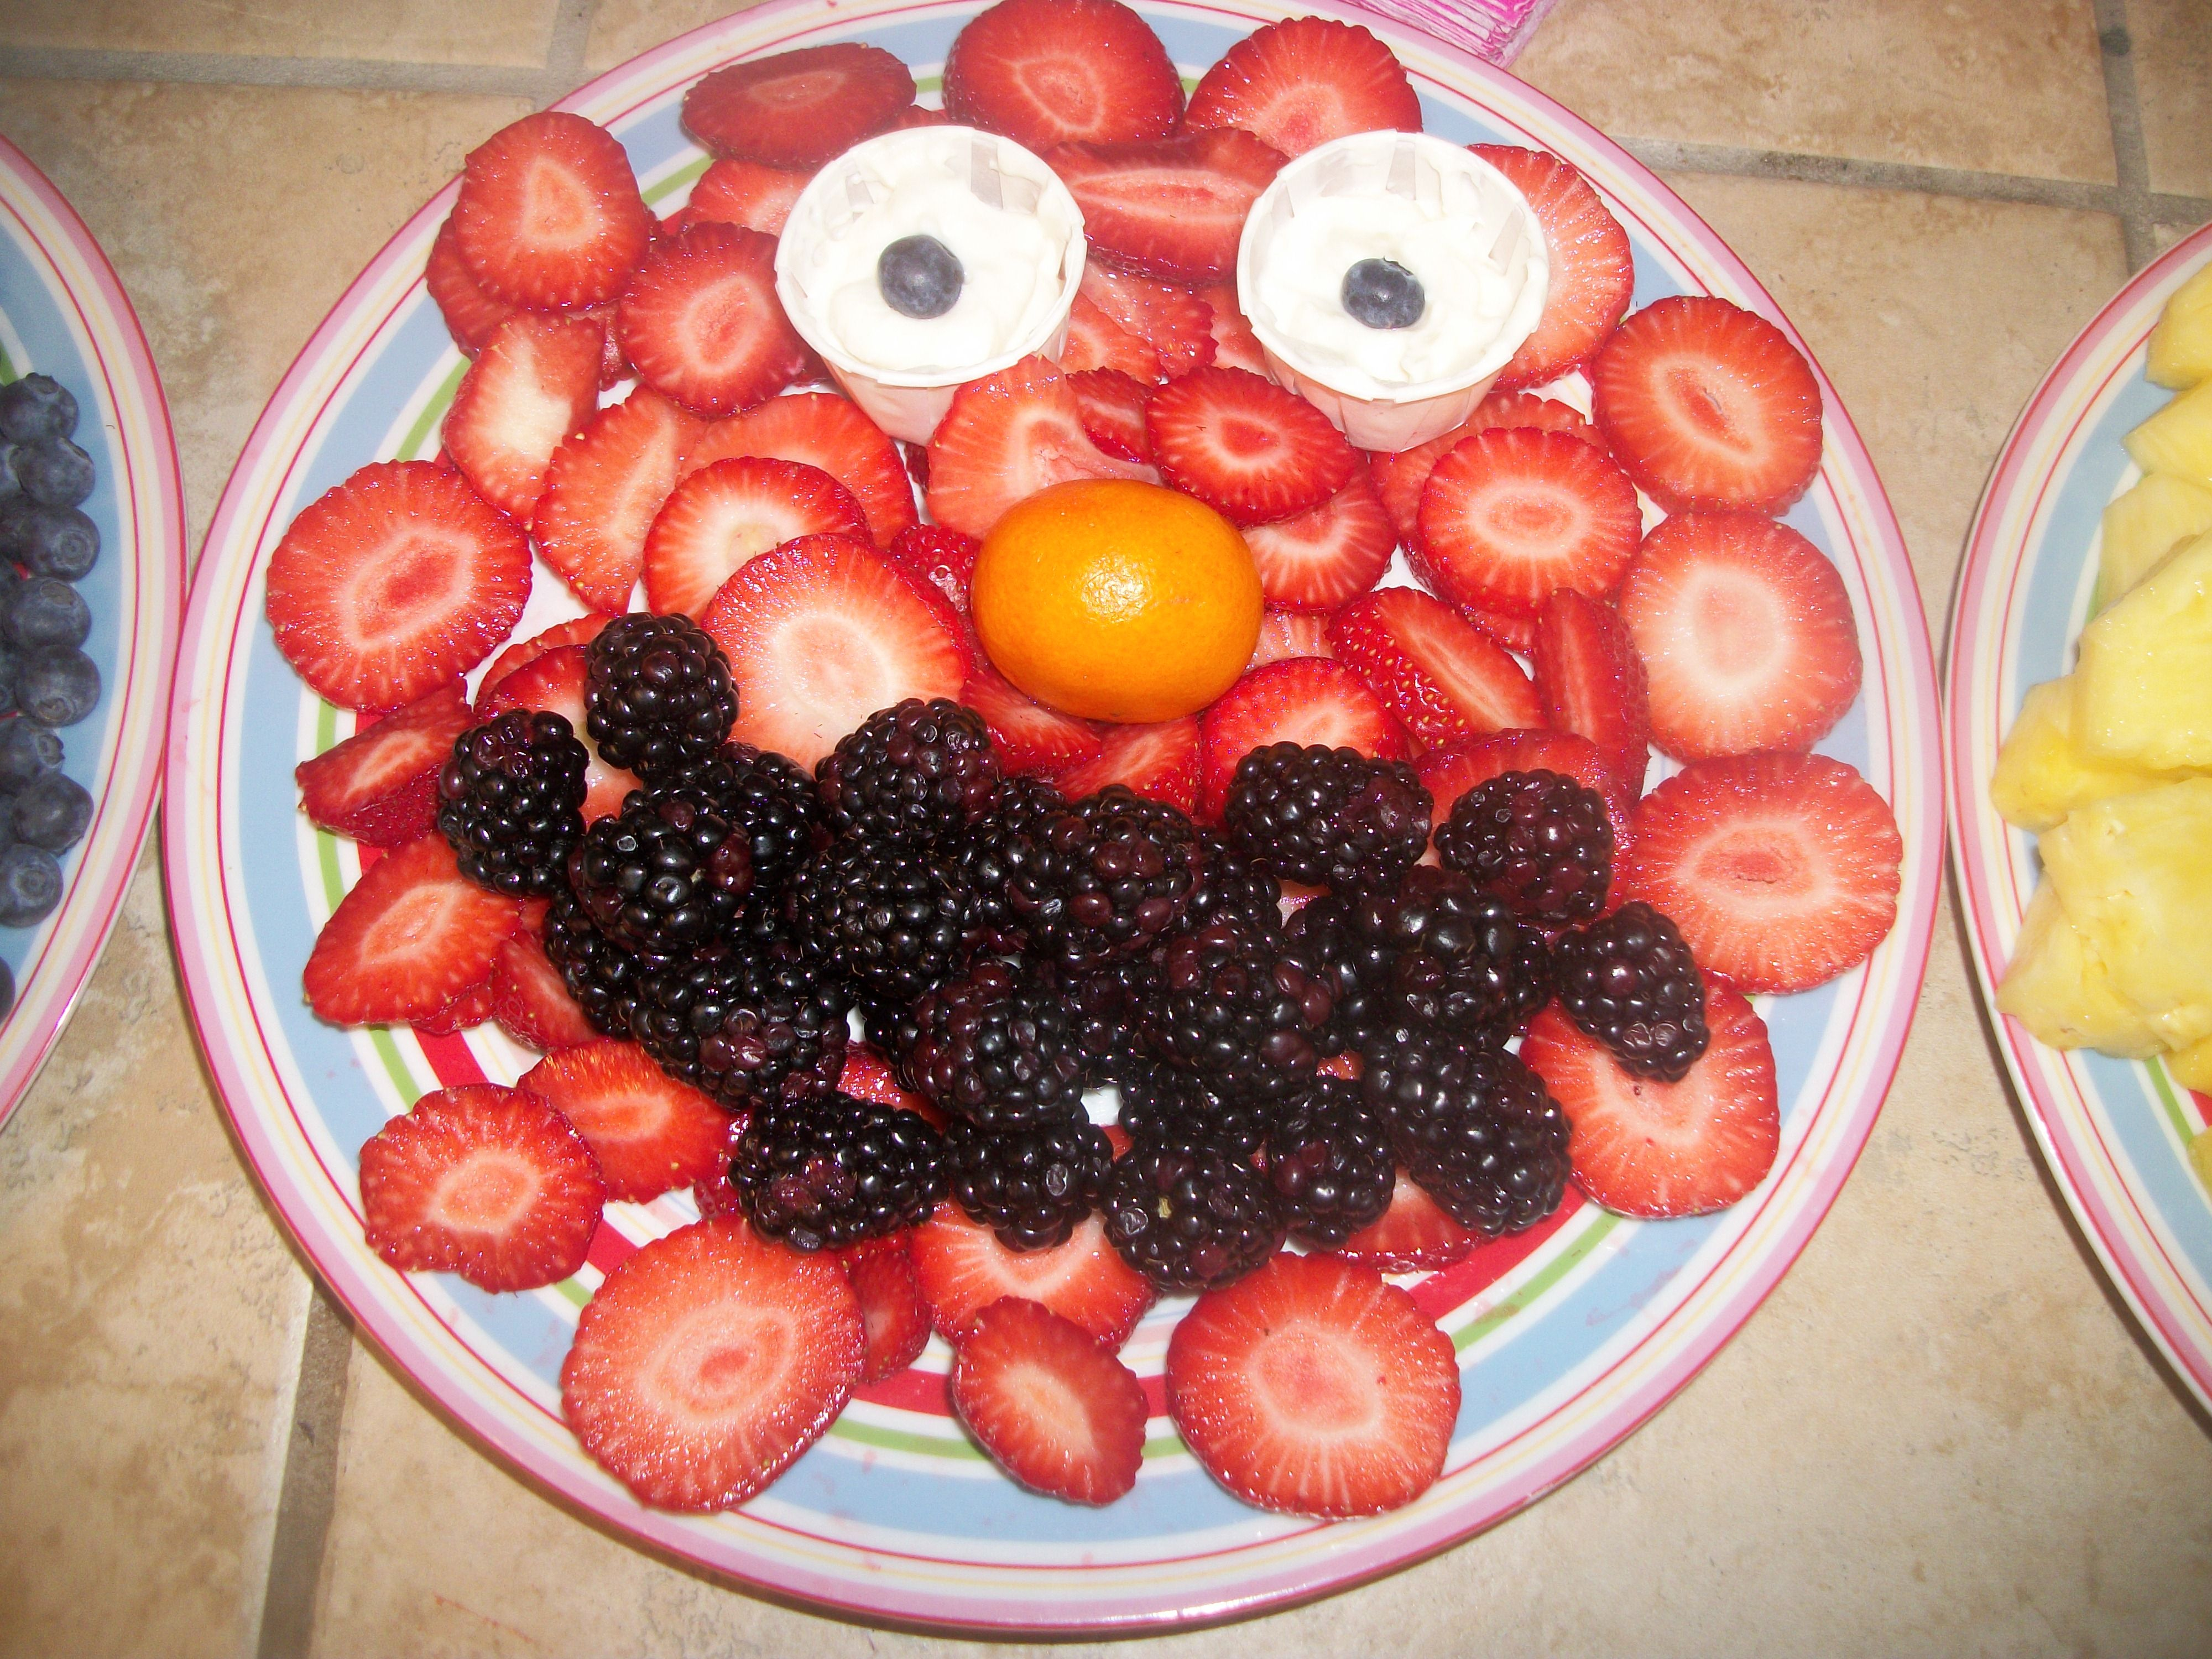 Sliced strawberries with blackberries!!